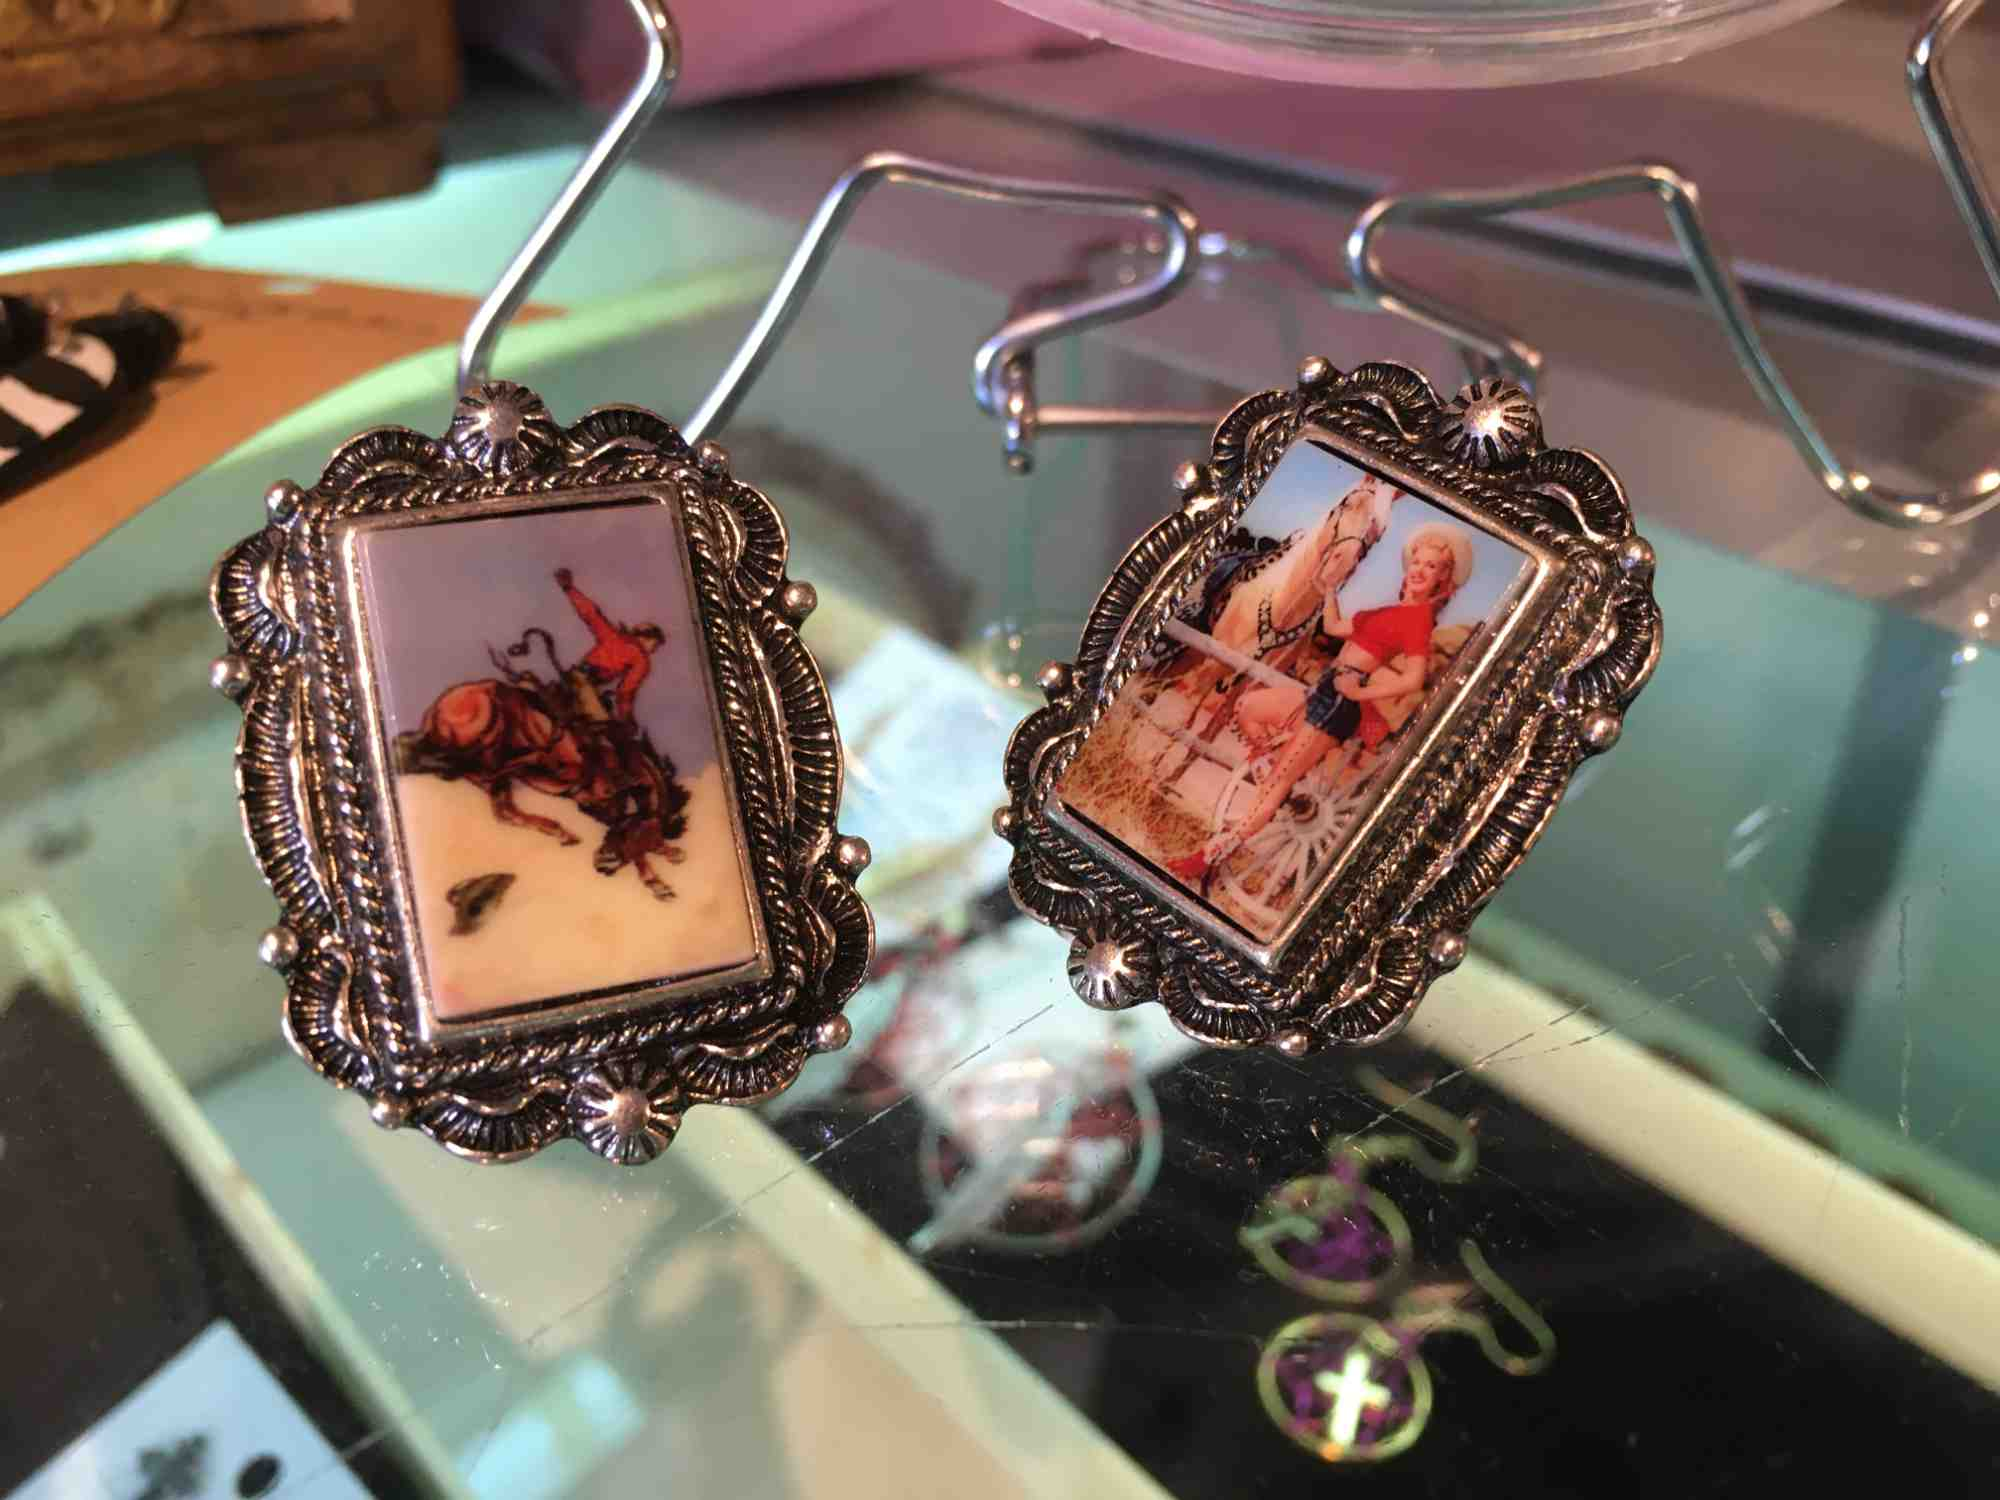 western-themed costume jewelry at Rebel Roadrunner, Truth or Consequences